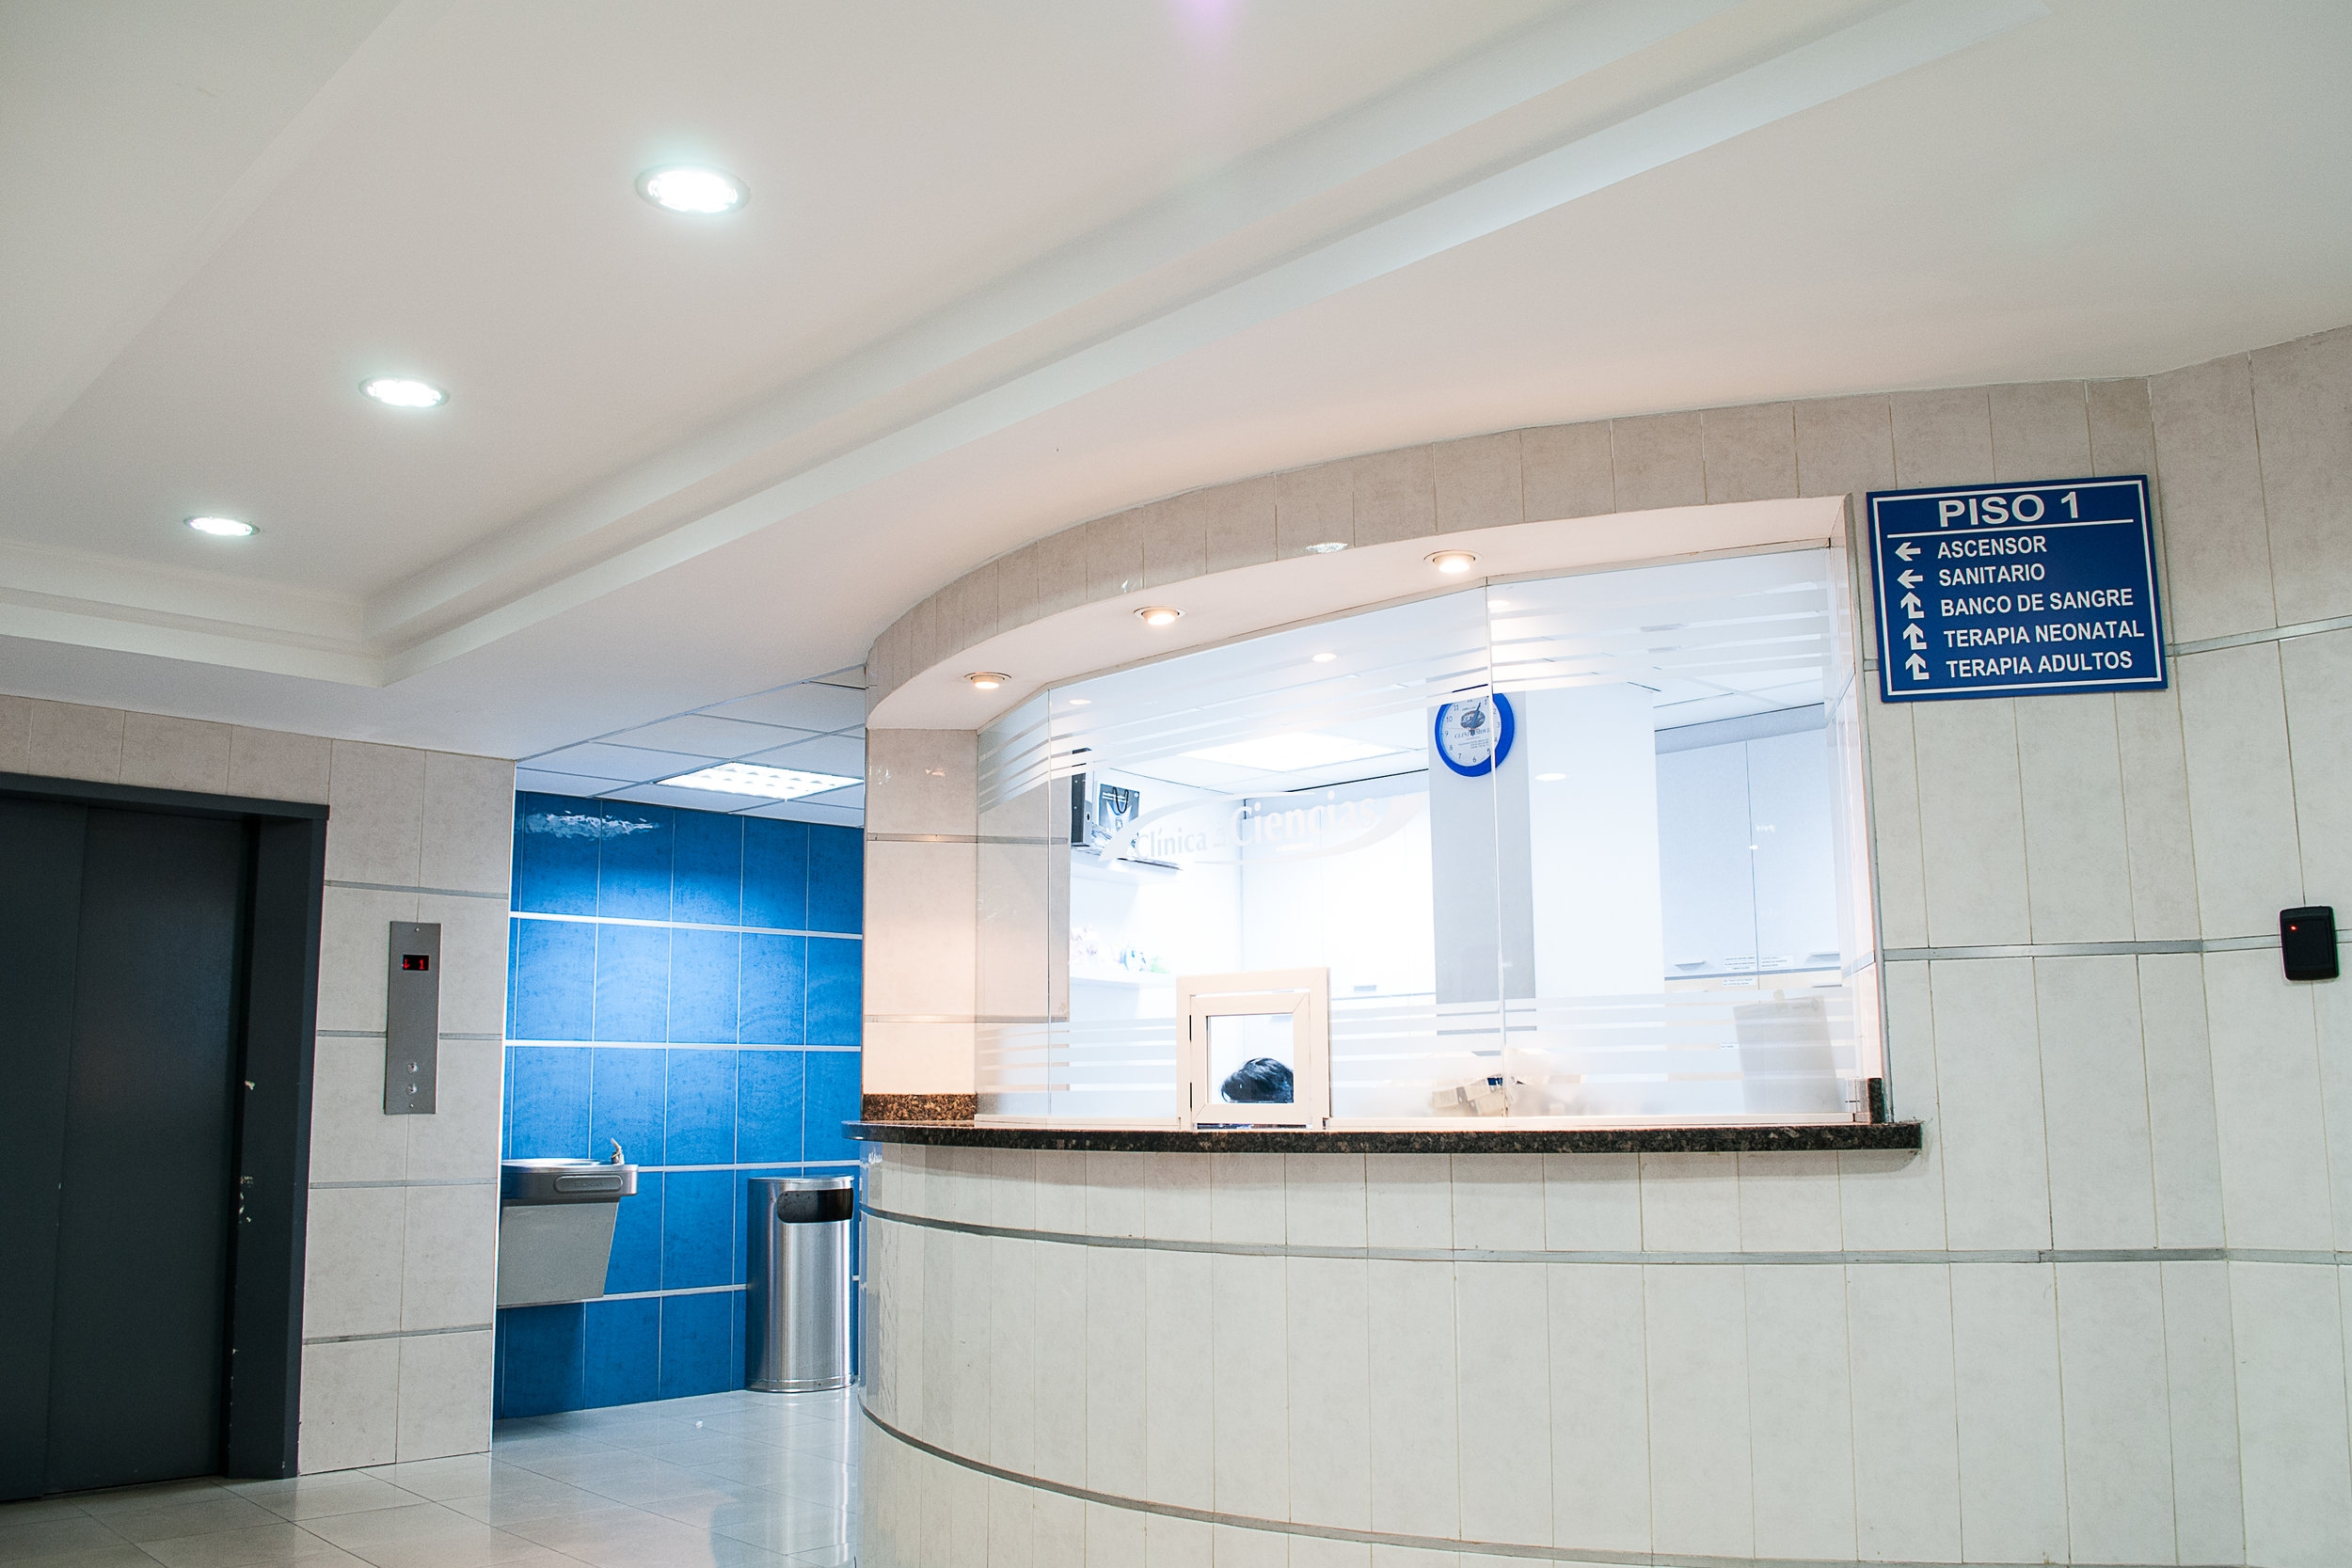 Hospitals - Receive exceptional care at the best hospitals in the area